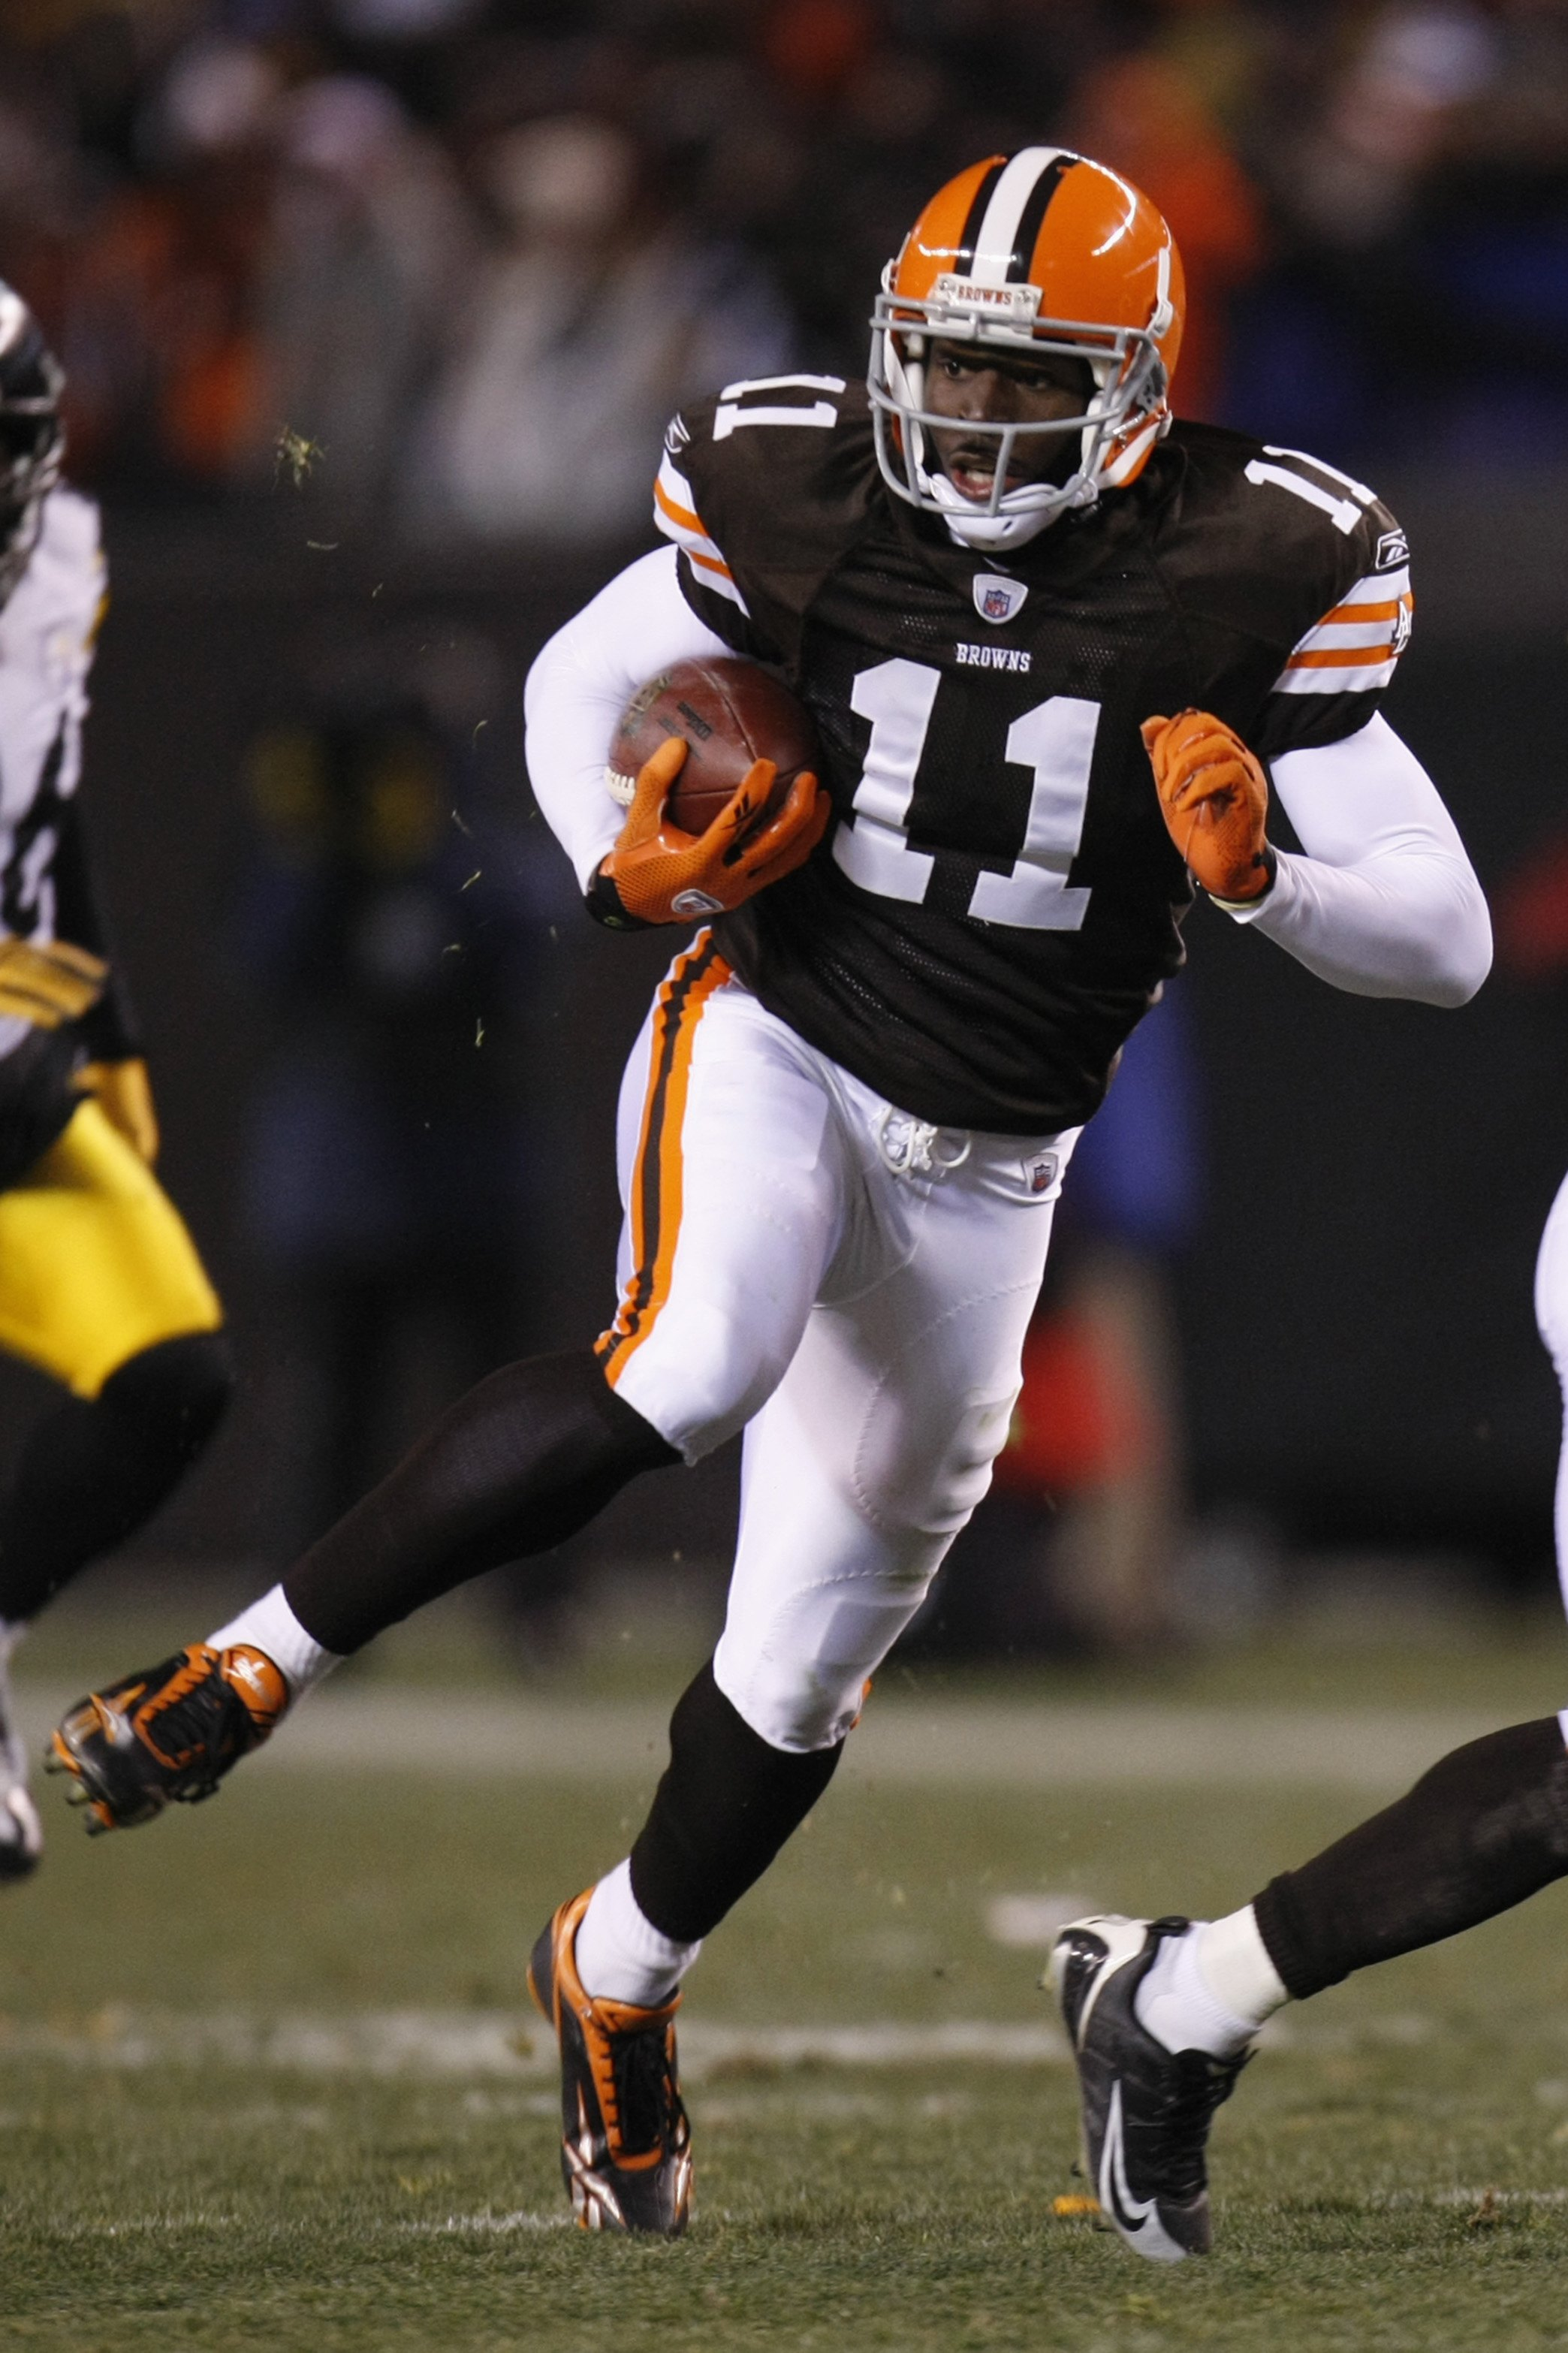 CLEVELAND - DECEMBER 10:  Mohamed Massaquoi #11 of the Cleveland Browns runs with the ball during the game against the Pittsburgh Steelers on December 10, 2009 at Cleveland Browns Stadium in Cleveland, Ohio. Cleveland won the game 13-6.  (Photo by Gregory